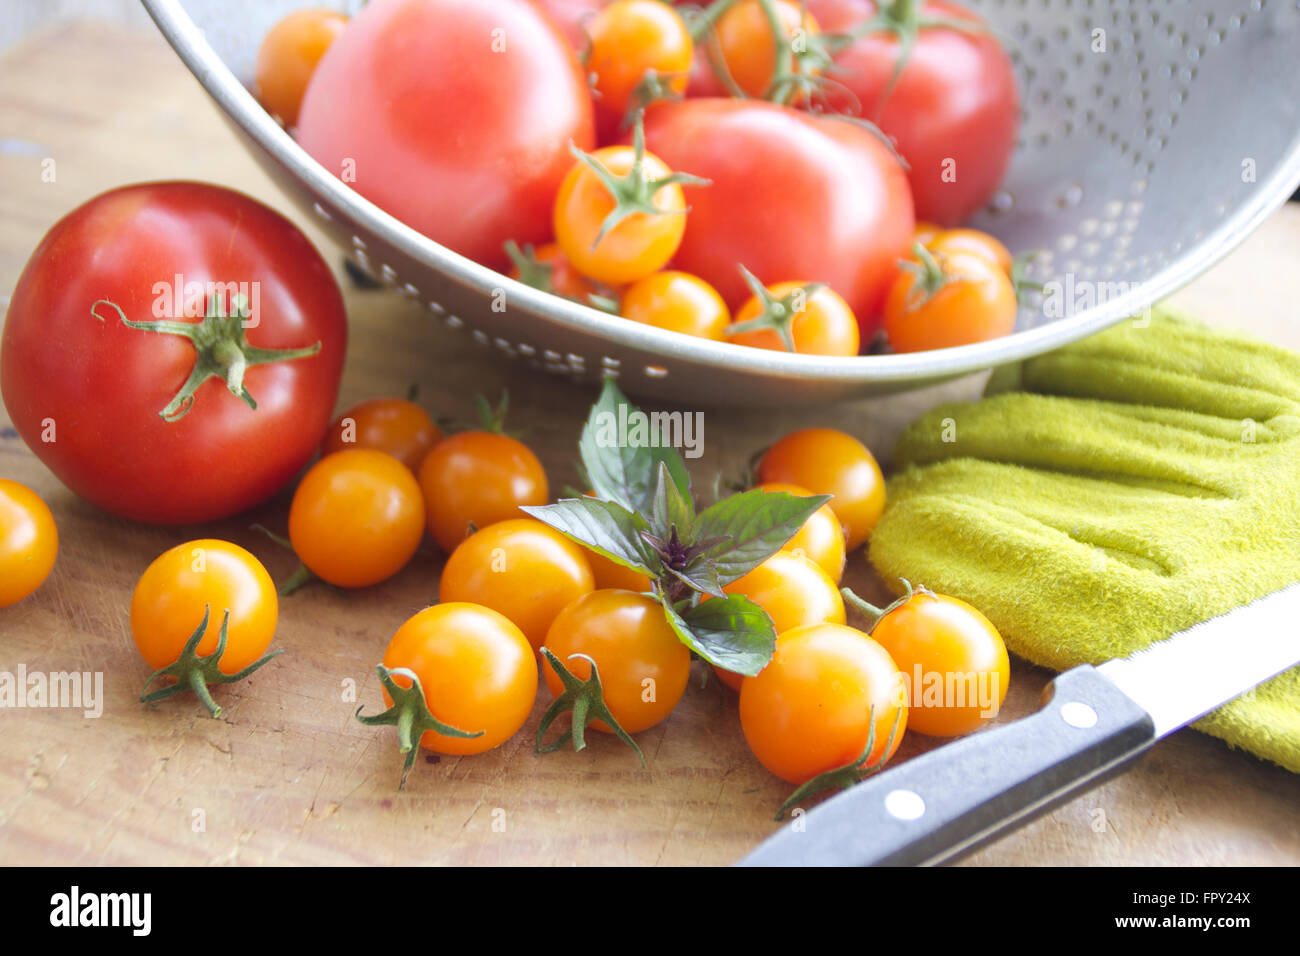 Tomato harvest with a veriety of red and orange cherry tomatoes, green gloves and knife Stock Photo